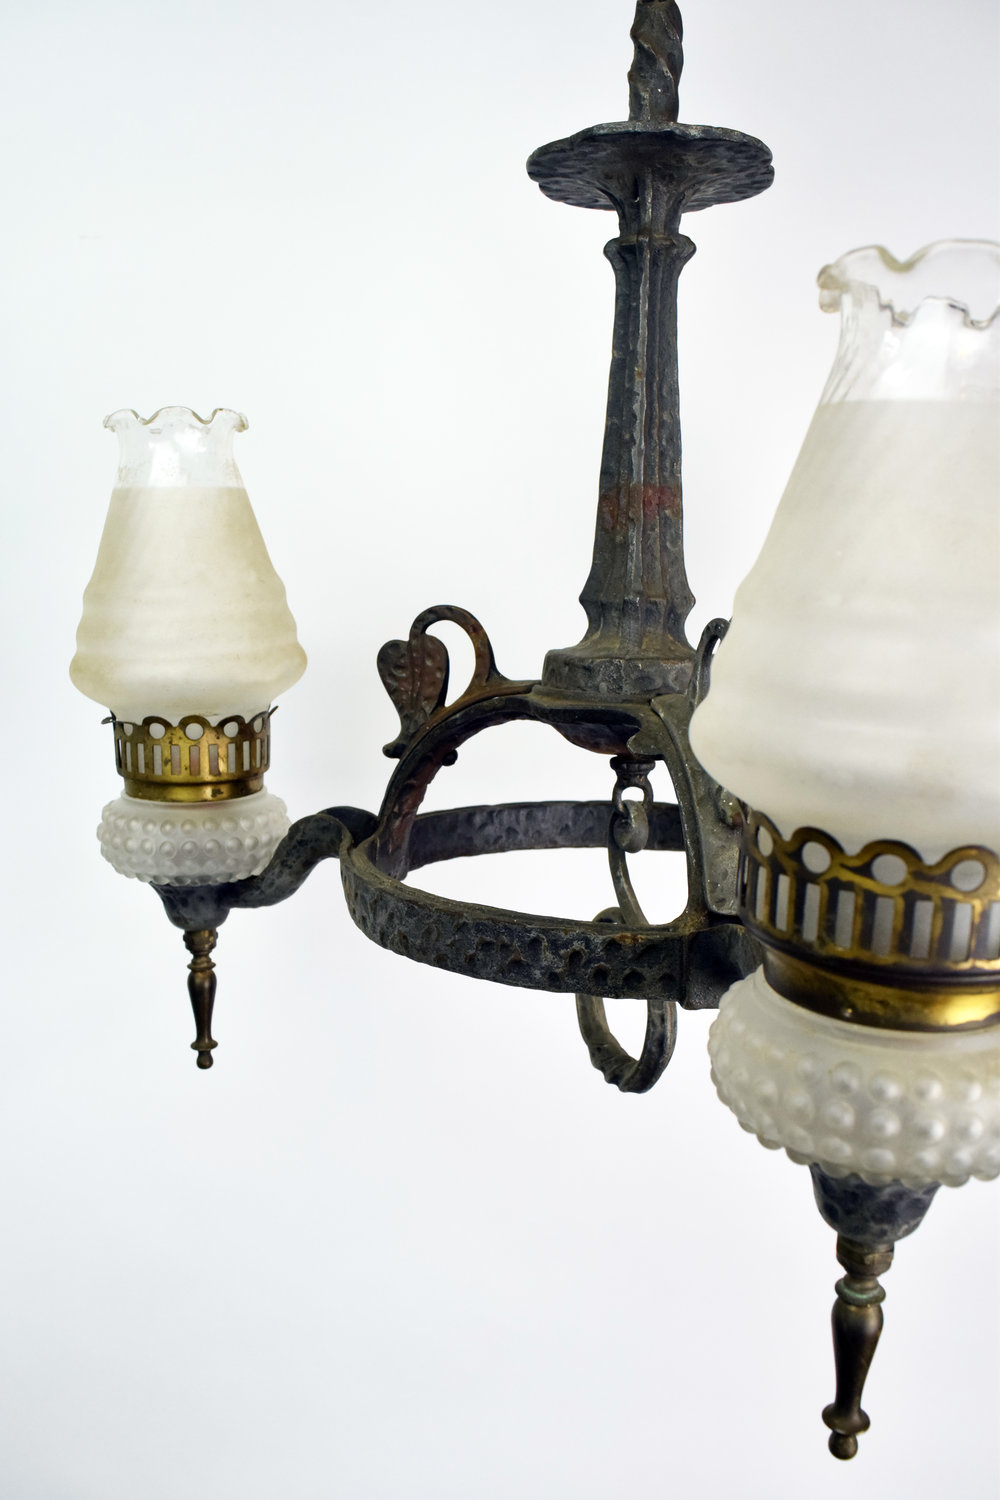 46477-3light-chand-side detail.JPG